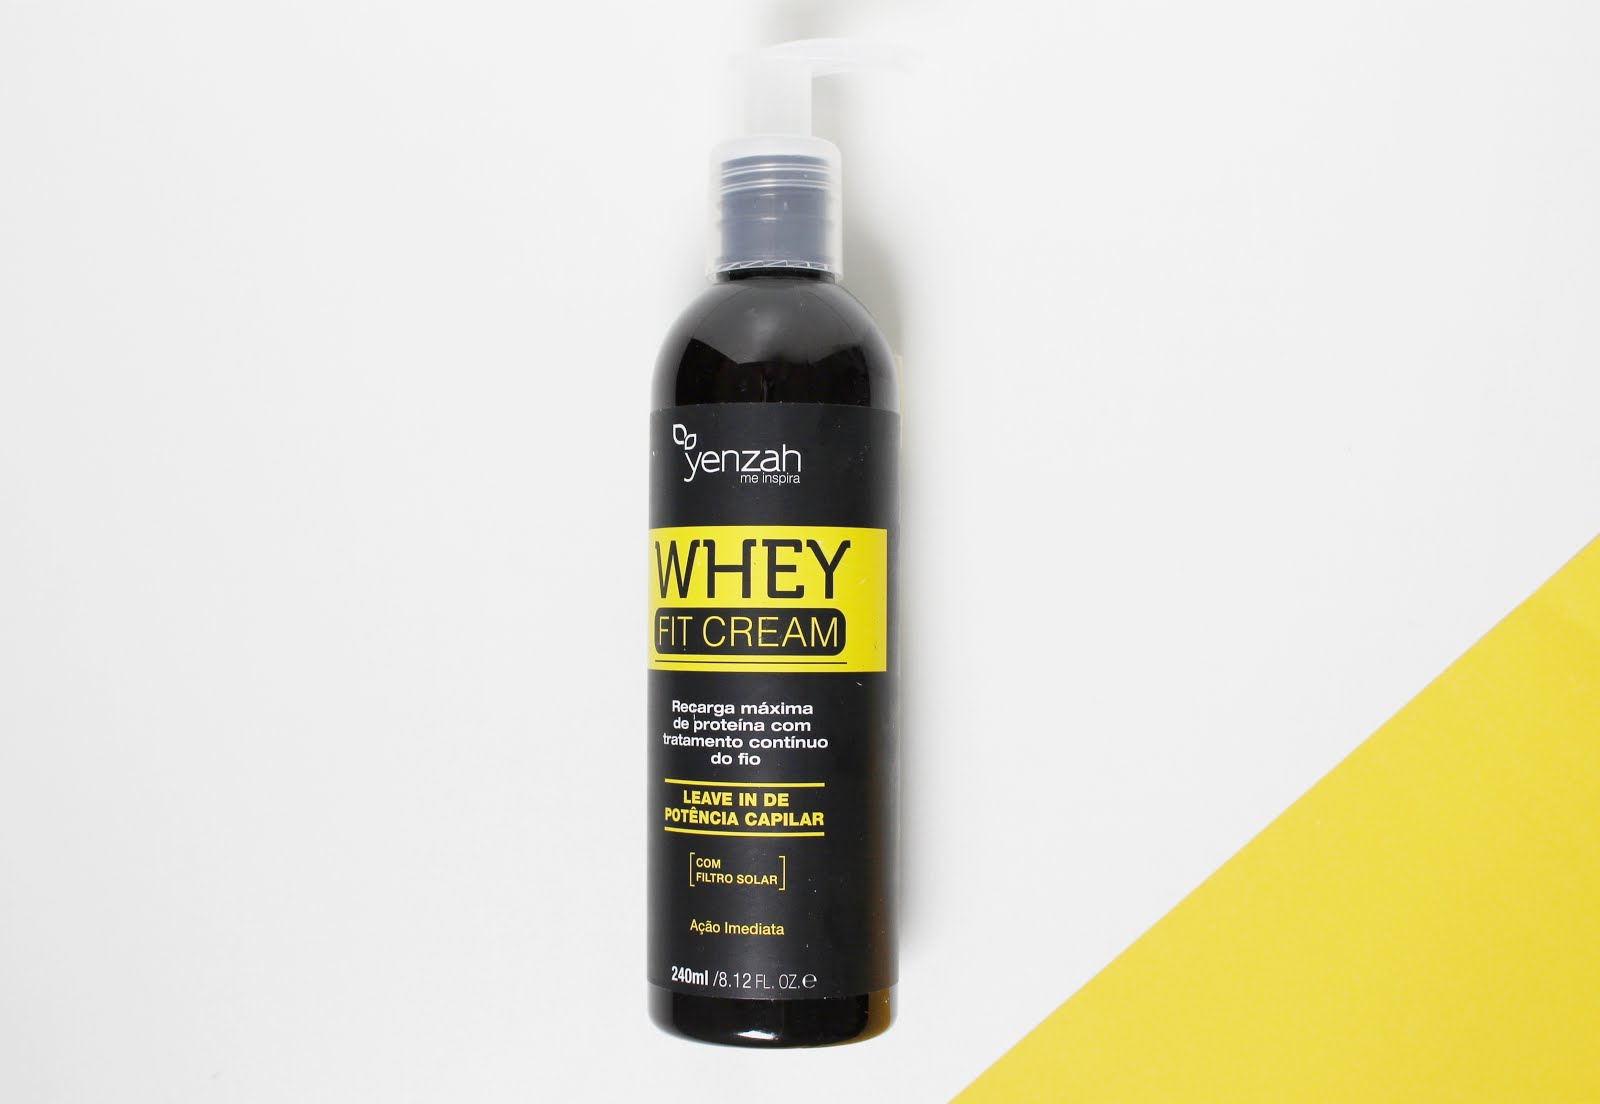 Whey Fit Cream Yenzah - Blog CrisFelix